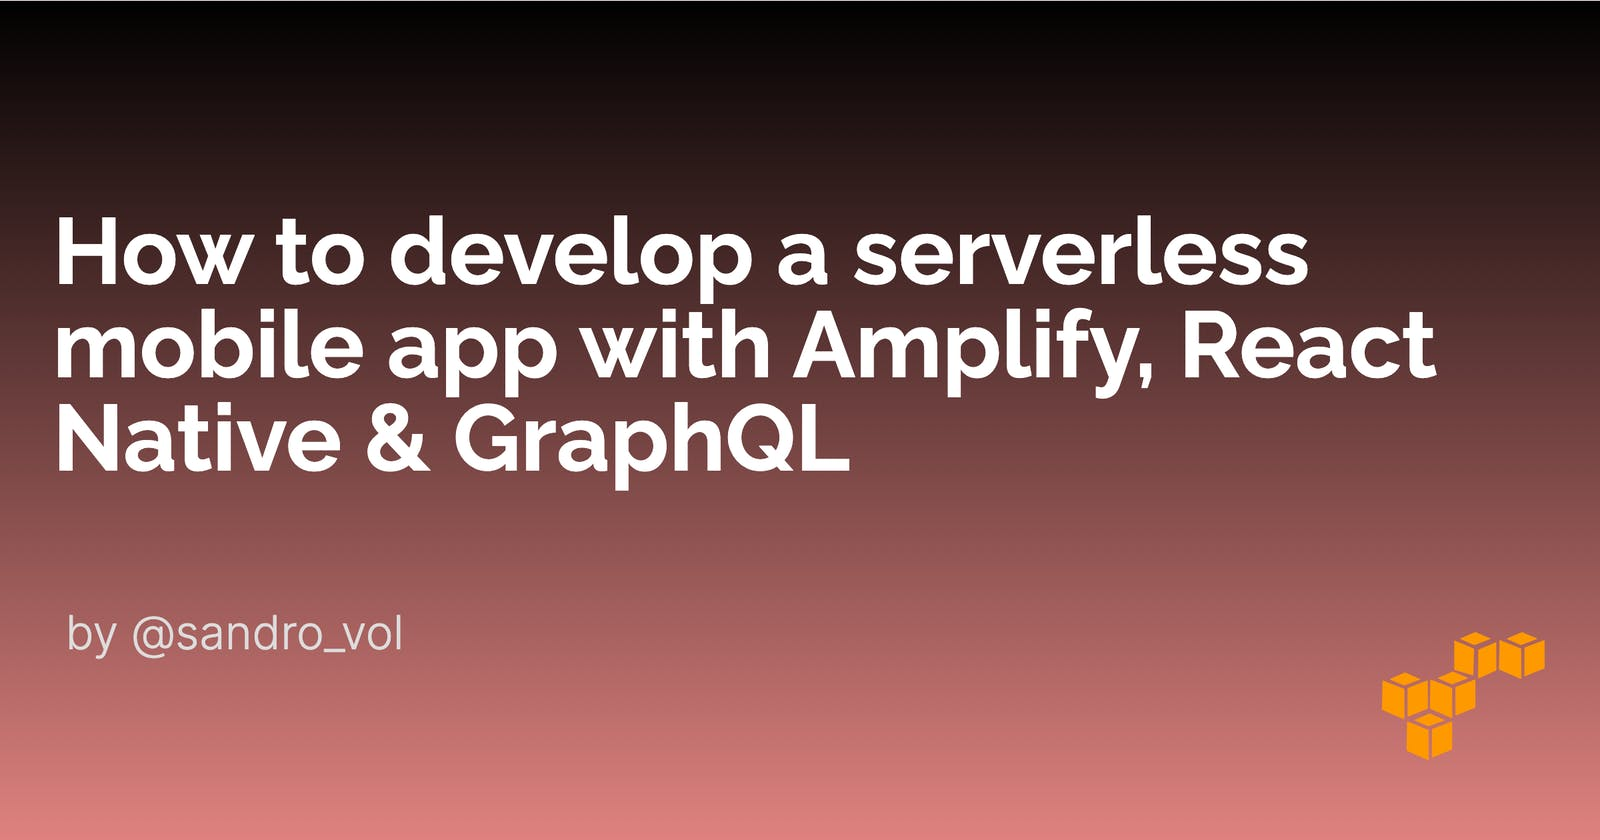 How to develop a serverless mobile app with Amplify, React Native & GraphQL